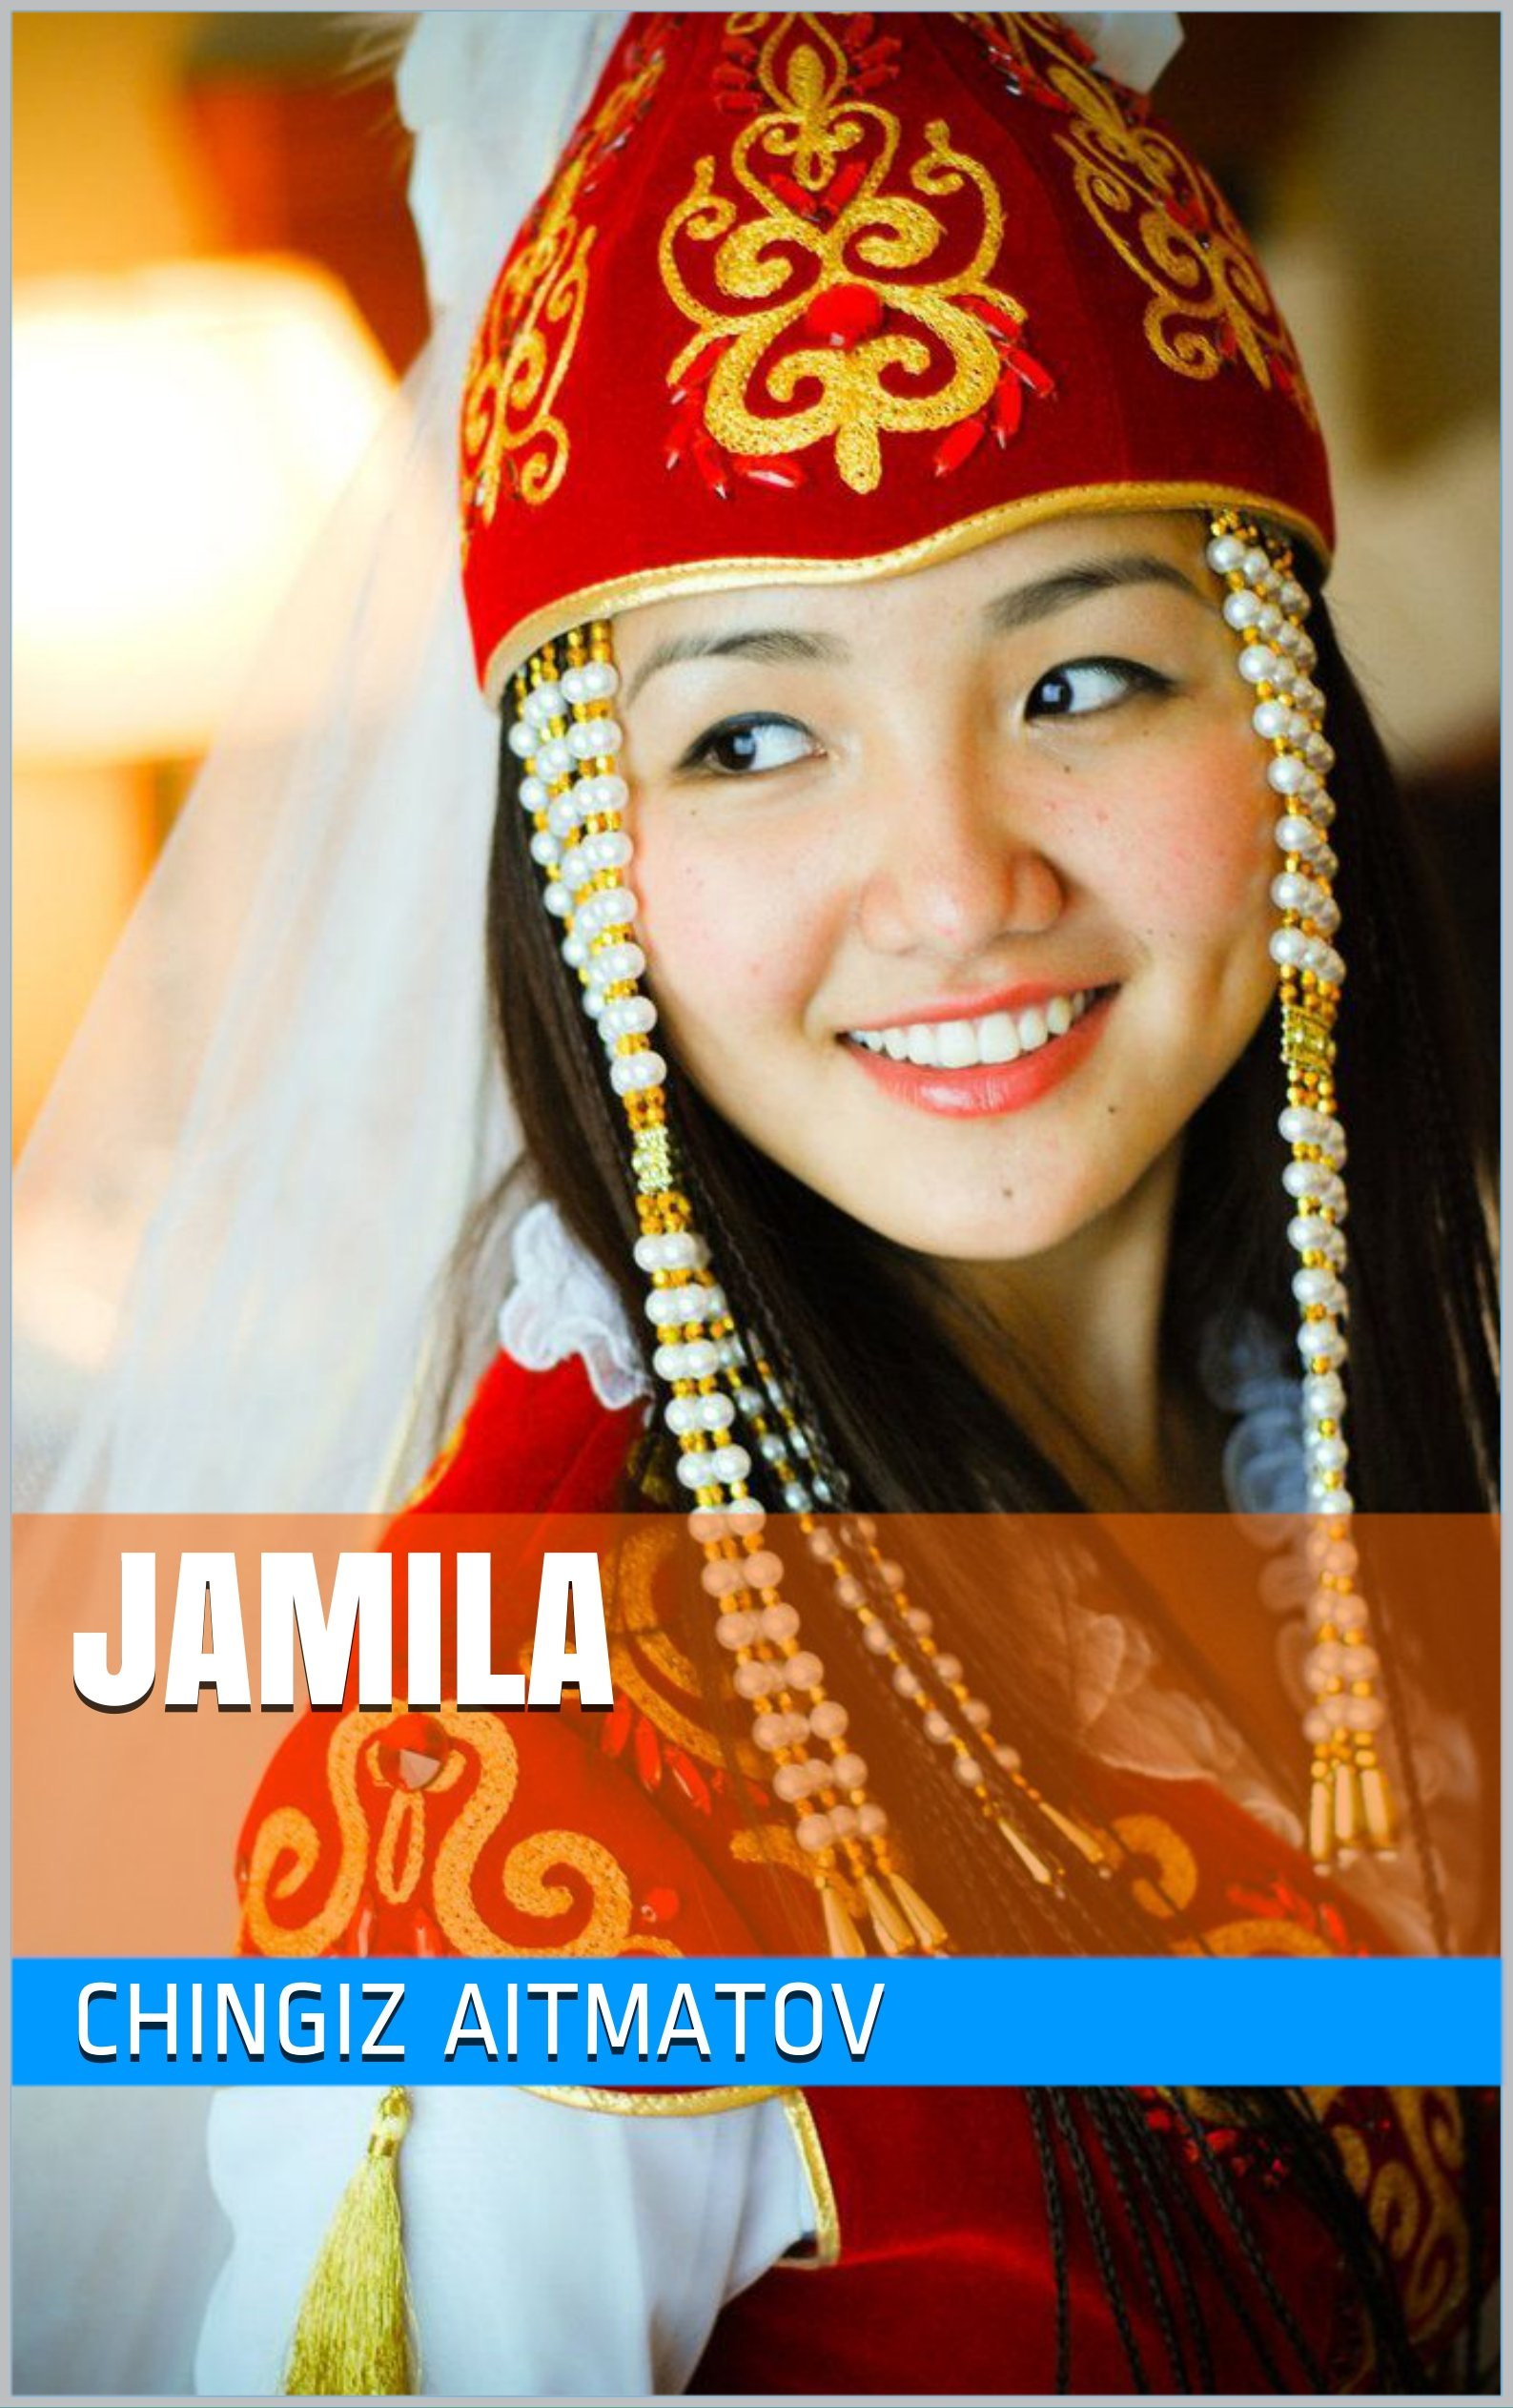 Jamila  English Edition